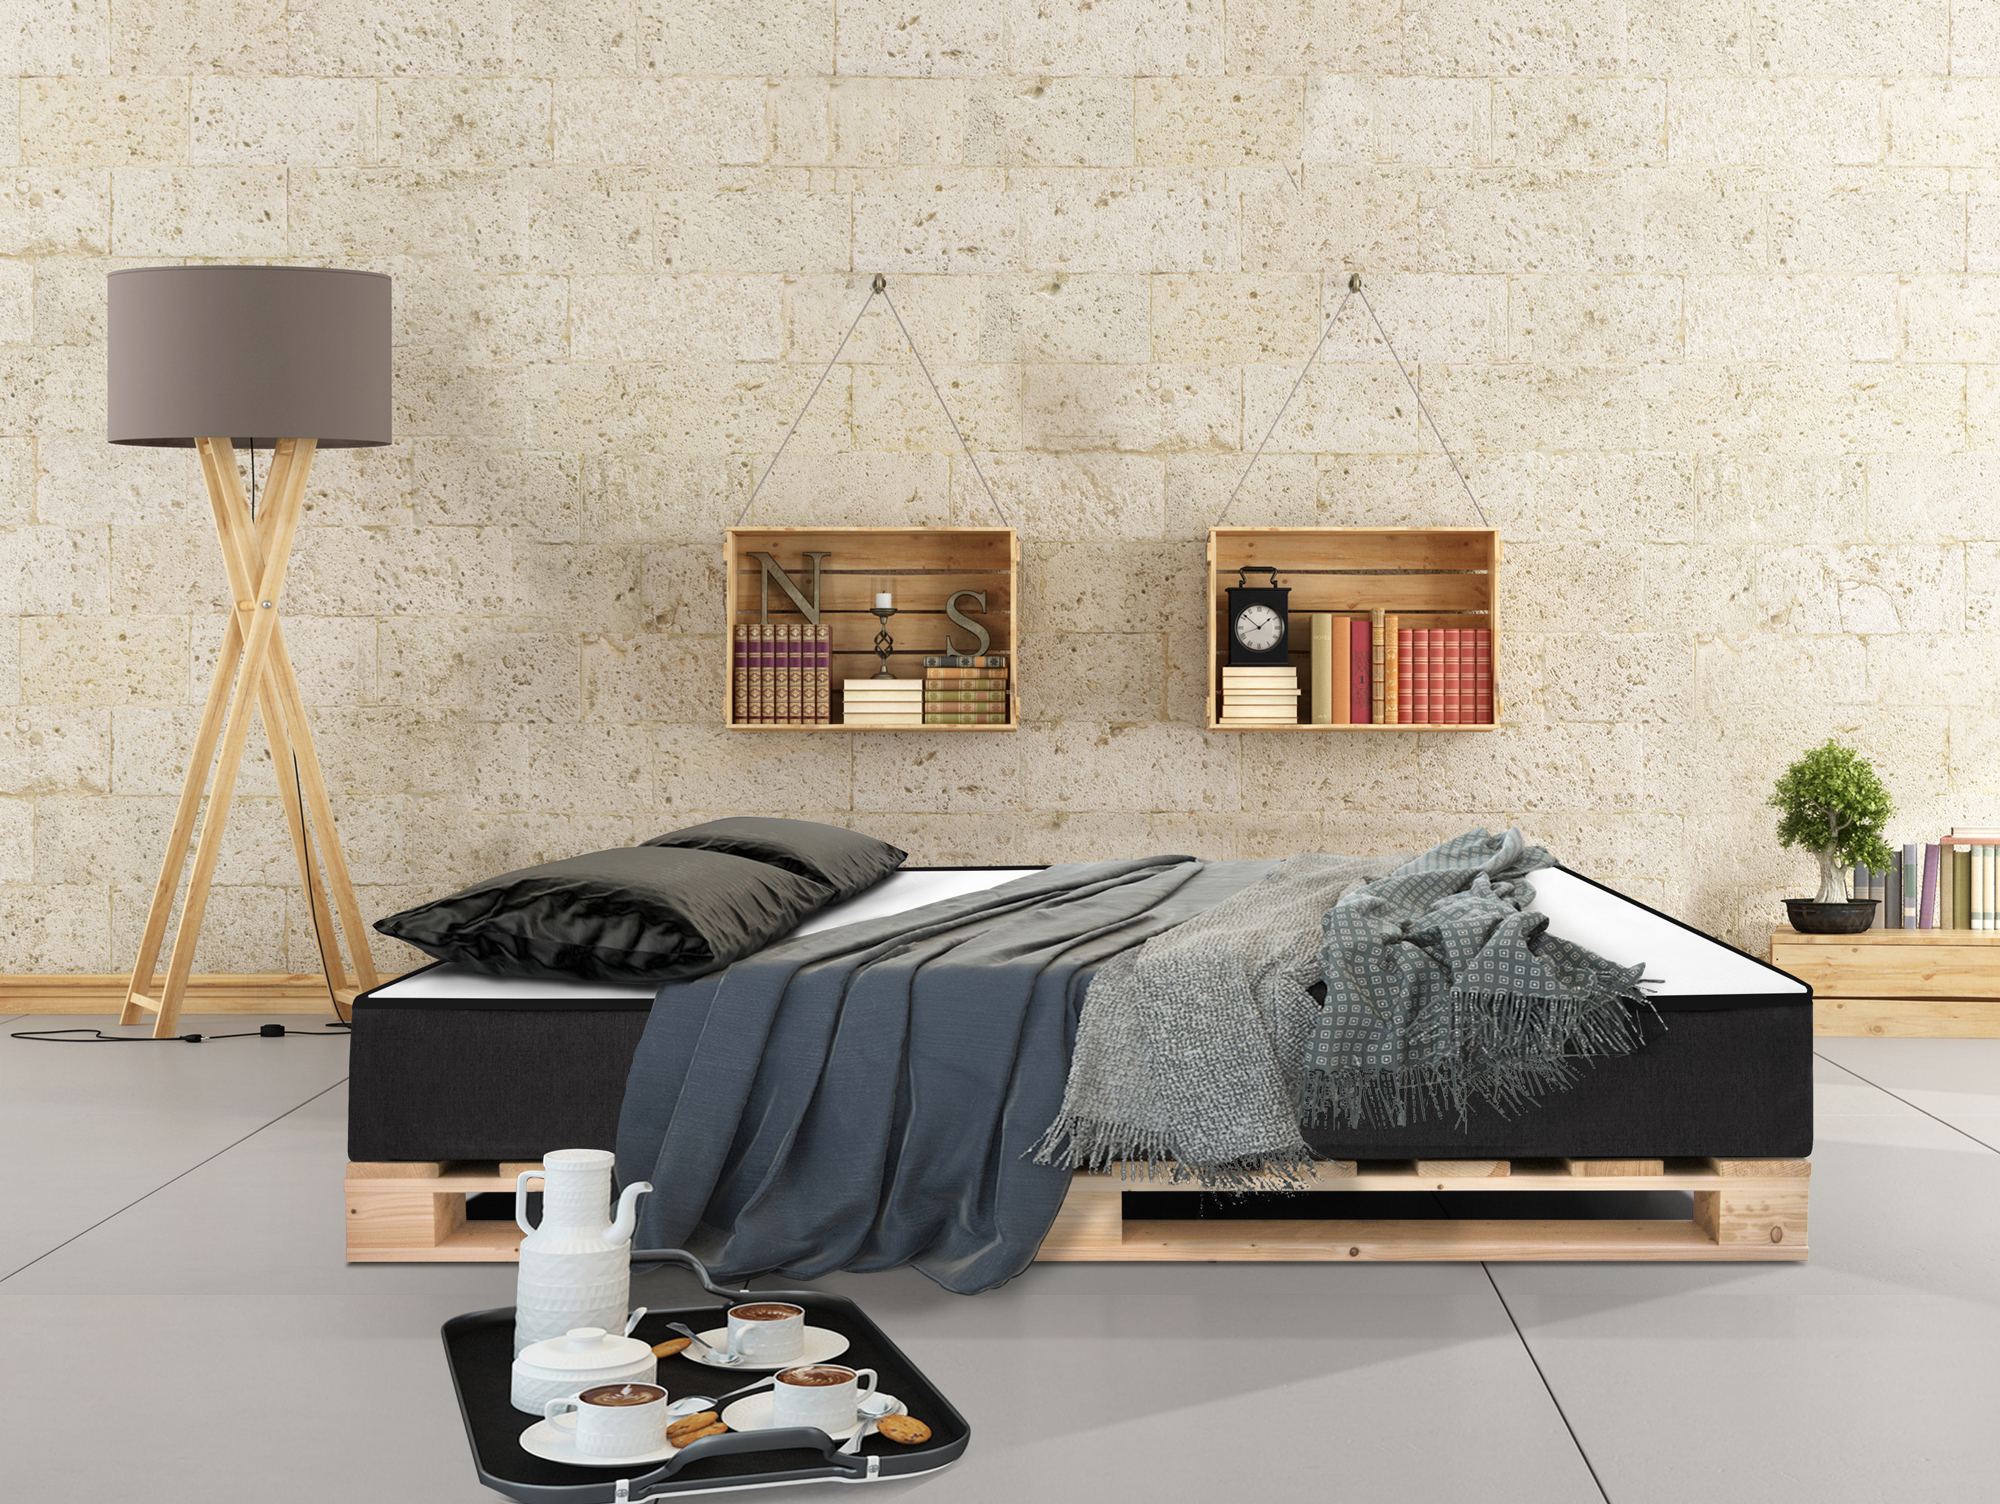 paletti palettenbett inkl moody matratze 90 x 200 cm. Black Bedroom Furniture Sets. Home Design Ideas